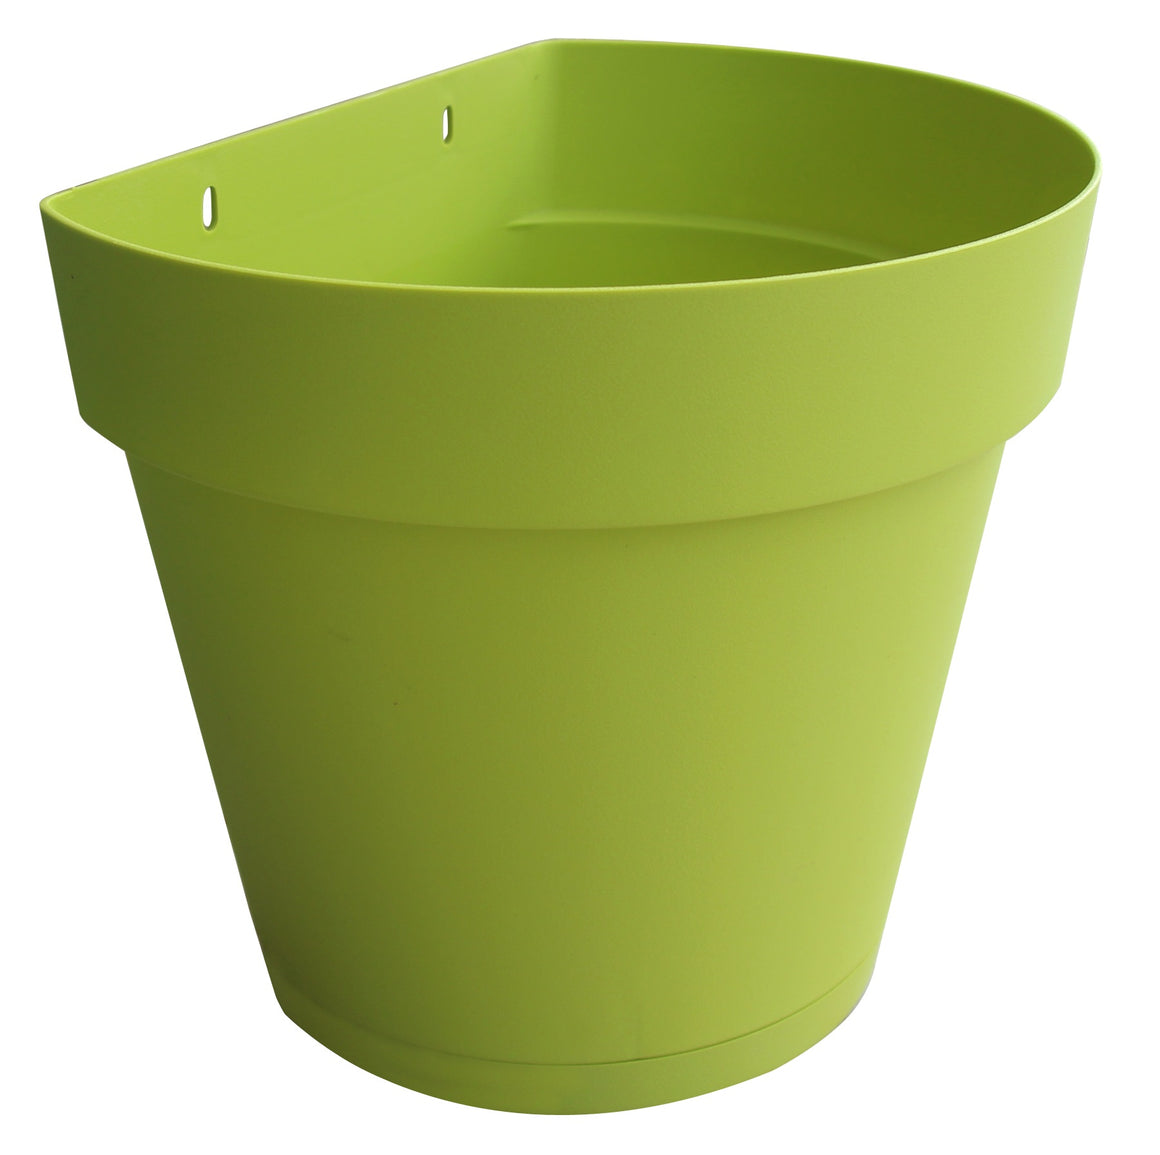 "TABOR TOOLS Plastic Wall Planter Pot for Vertical Flower Garden, Living Wall or Kitchen Herbs, with Attached Saucer (Height: 8 1/2"")"